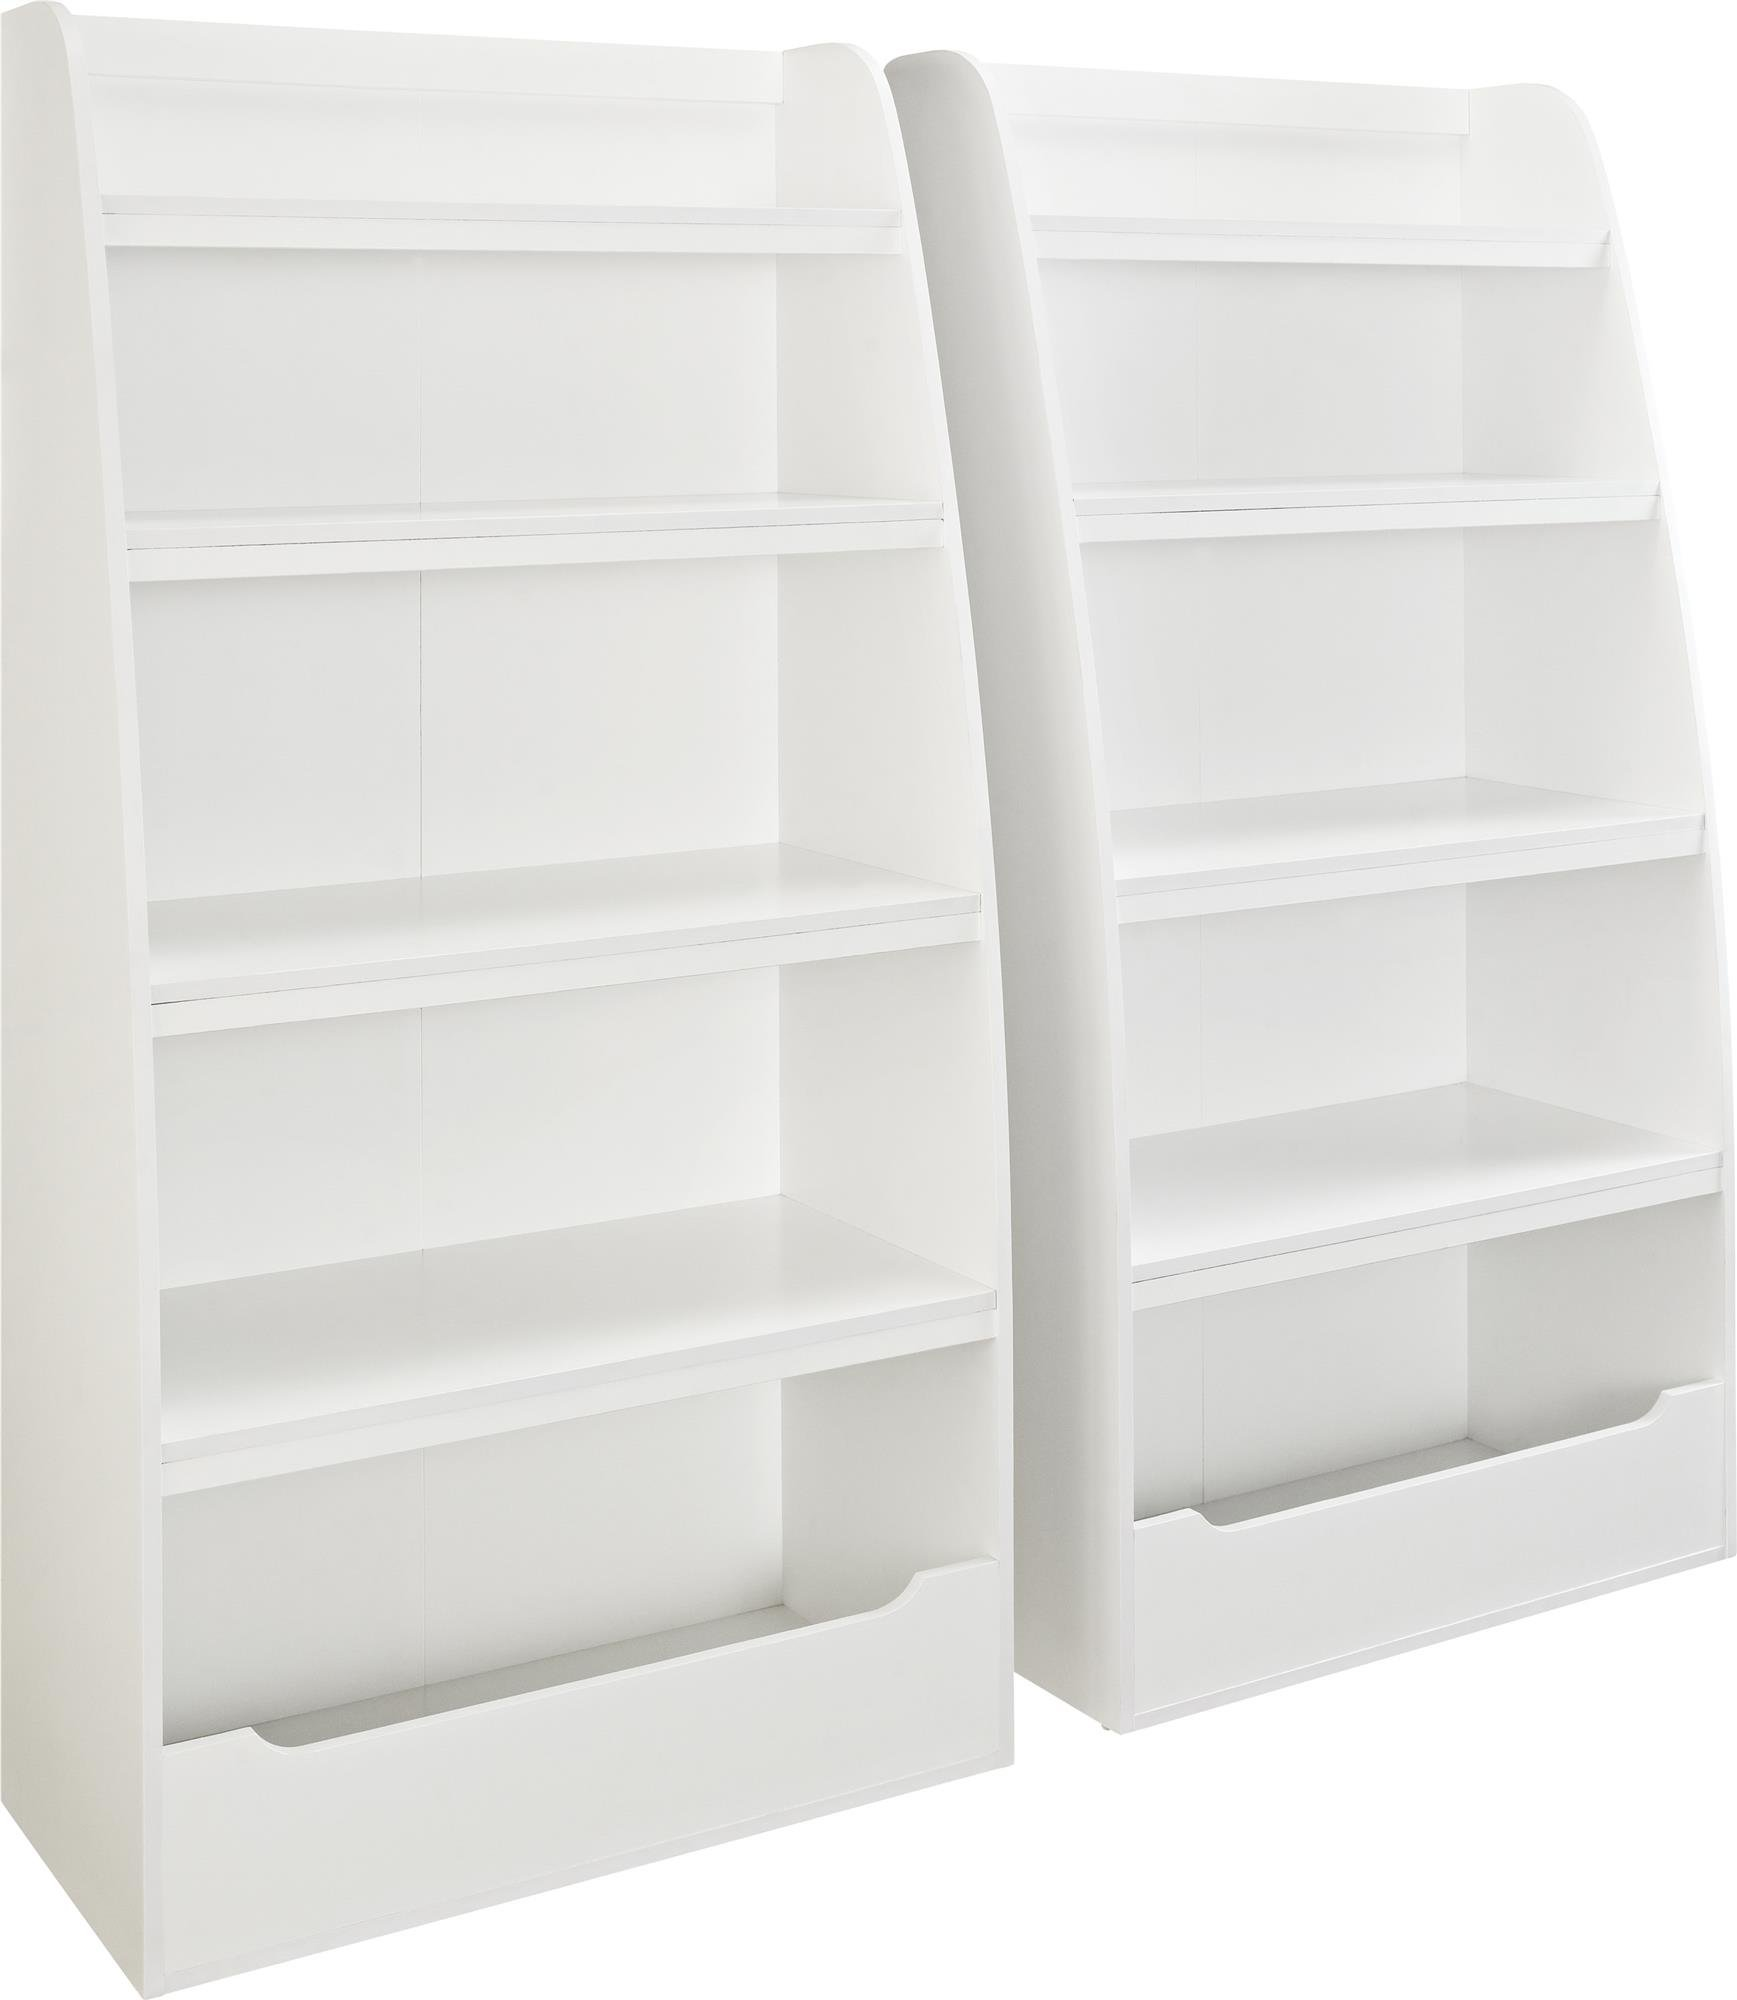 Ameriwood Home Hazel Kids' 4 Shelf Bookcase, White by Ameriwood Home (Image #4)